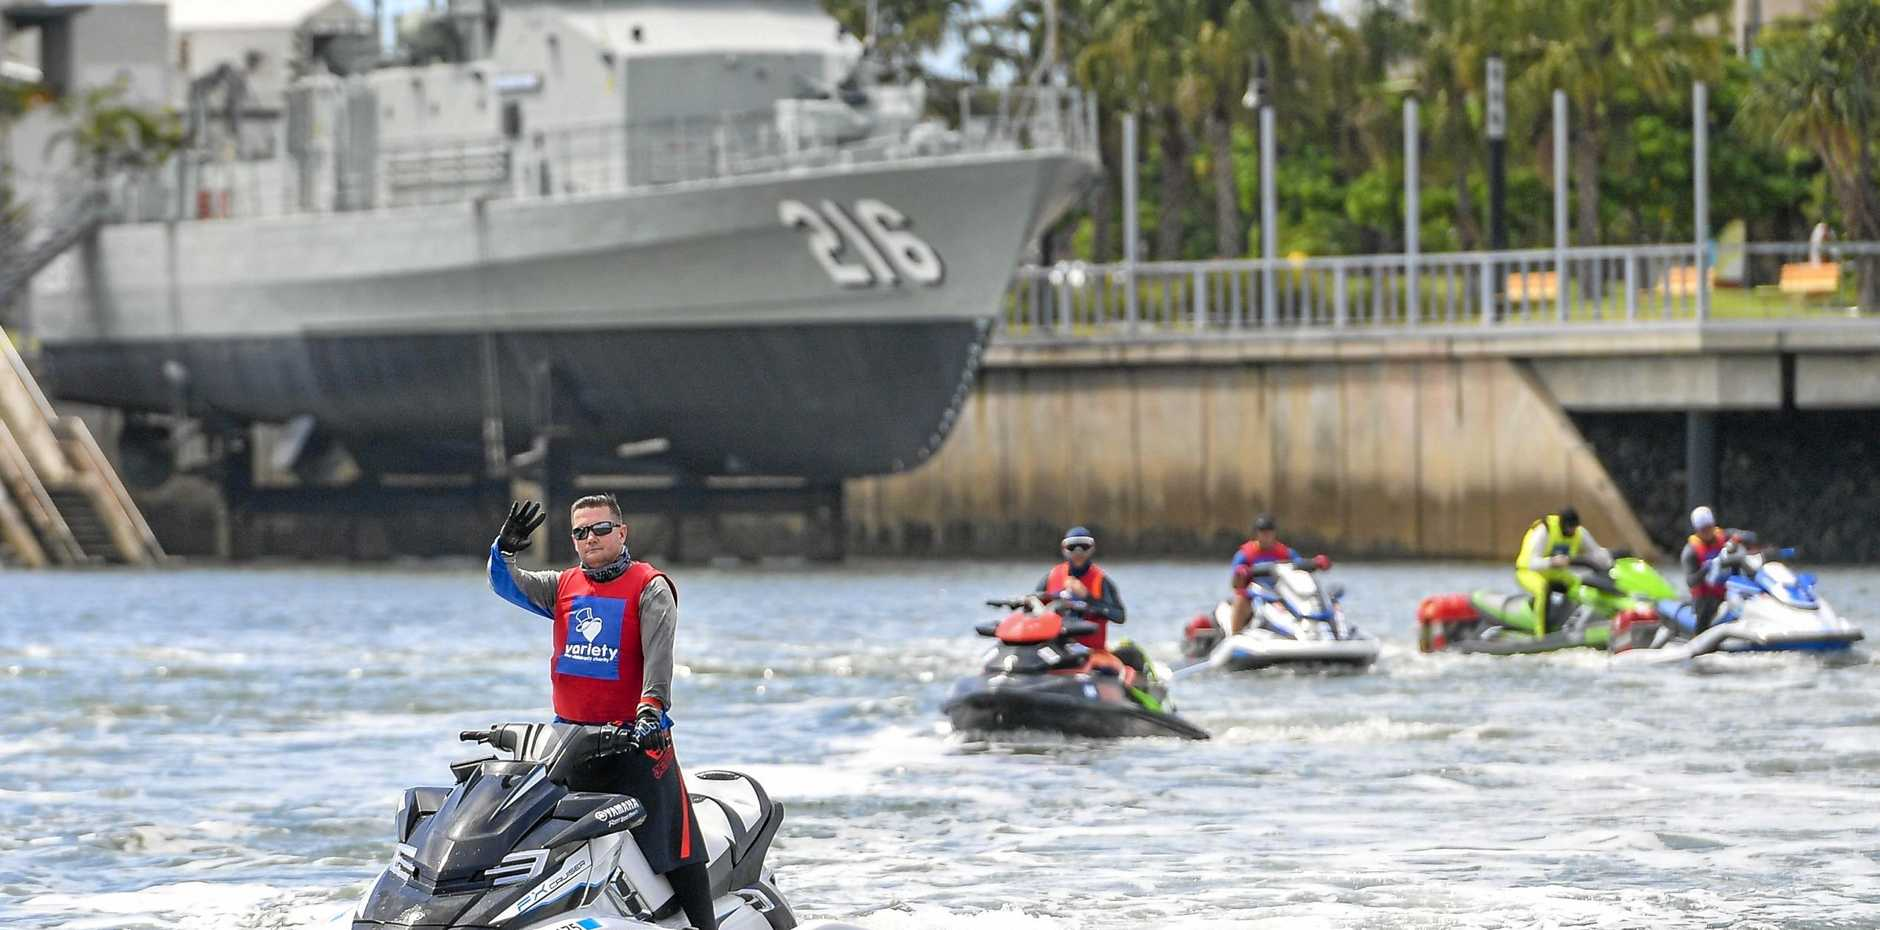 Jet skiers made their way into Gladstone Harbour as part of the 2019 Variety Yamaha Jet Trek, o their way from Bundaberg to Hamilton Island, raising money for disadvantaged children.